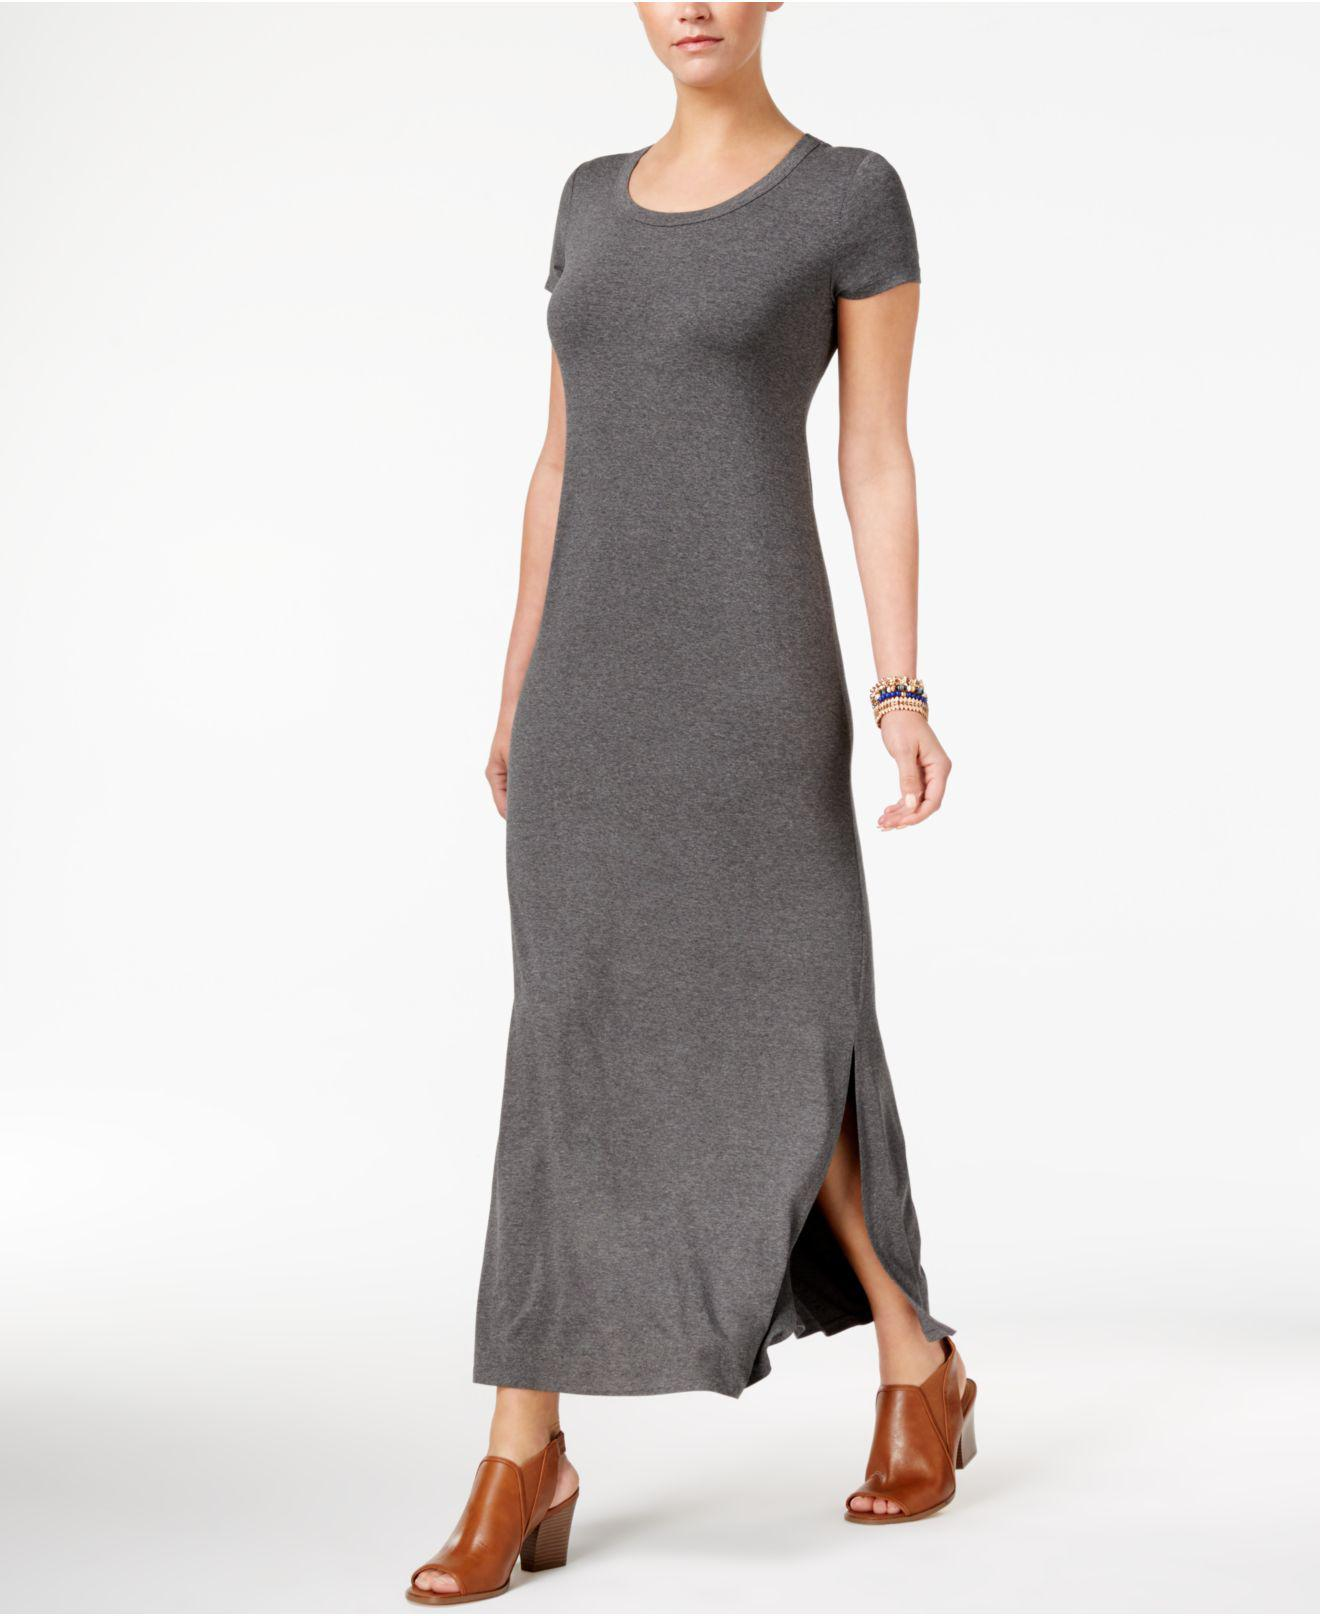 96e7b8d5a6e8 Lyst - Style & Co. Petite Scoop-neck Maxi Dress in Gray - Save 85%